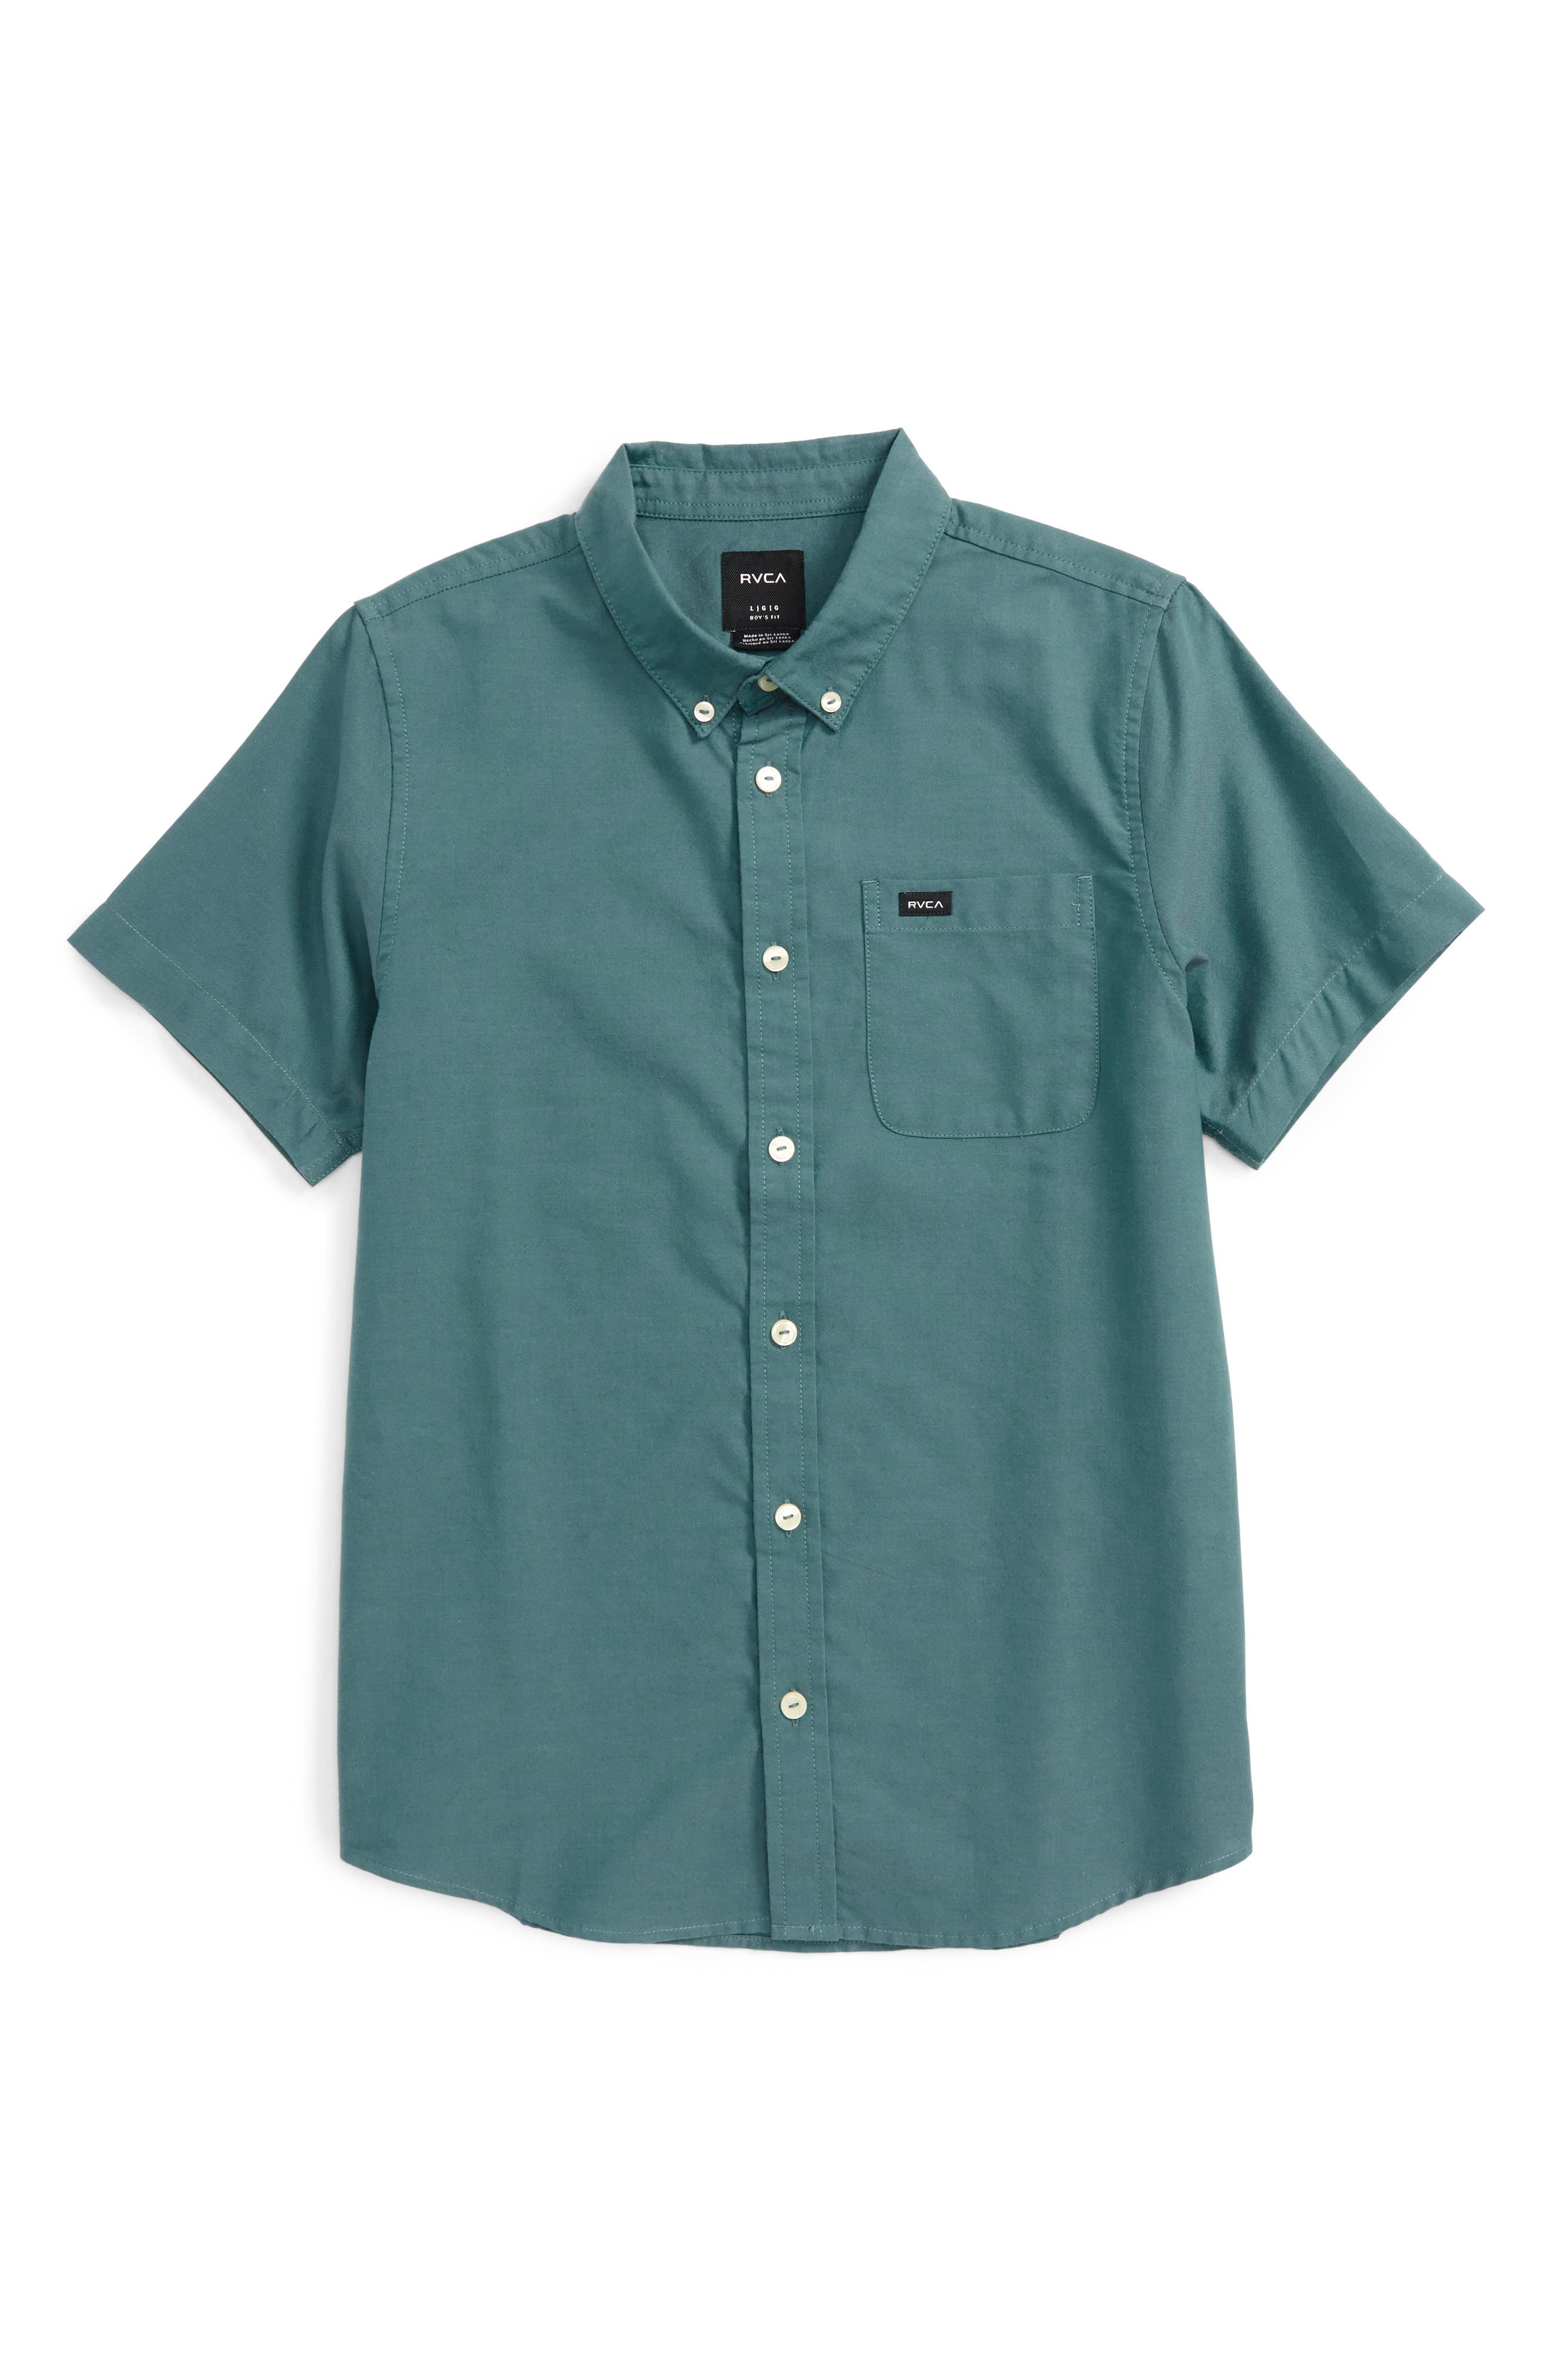 Alternate Image 1 Selected - RVCA 'That'll Do' Woven Shirt (Big Boys)